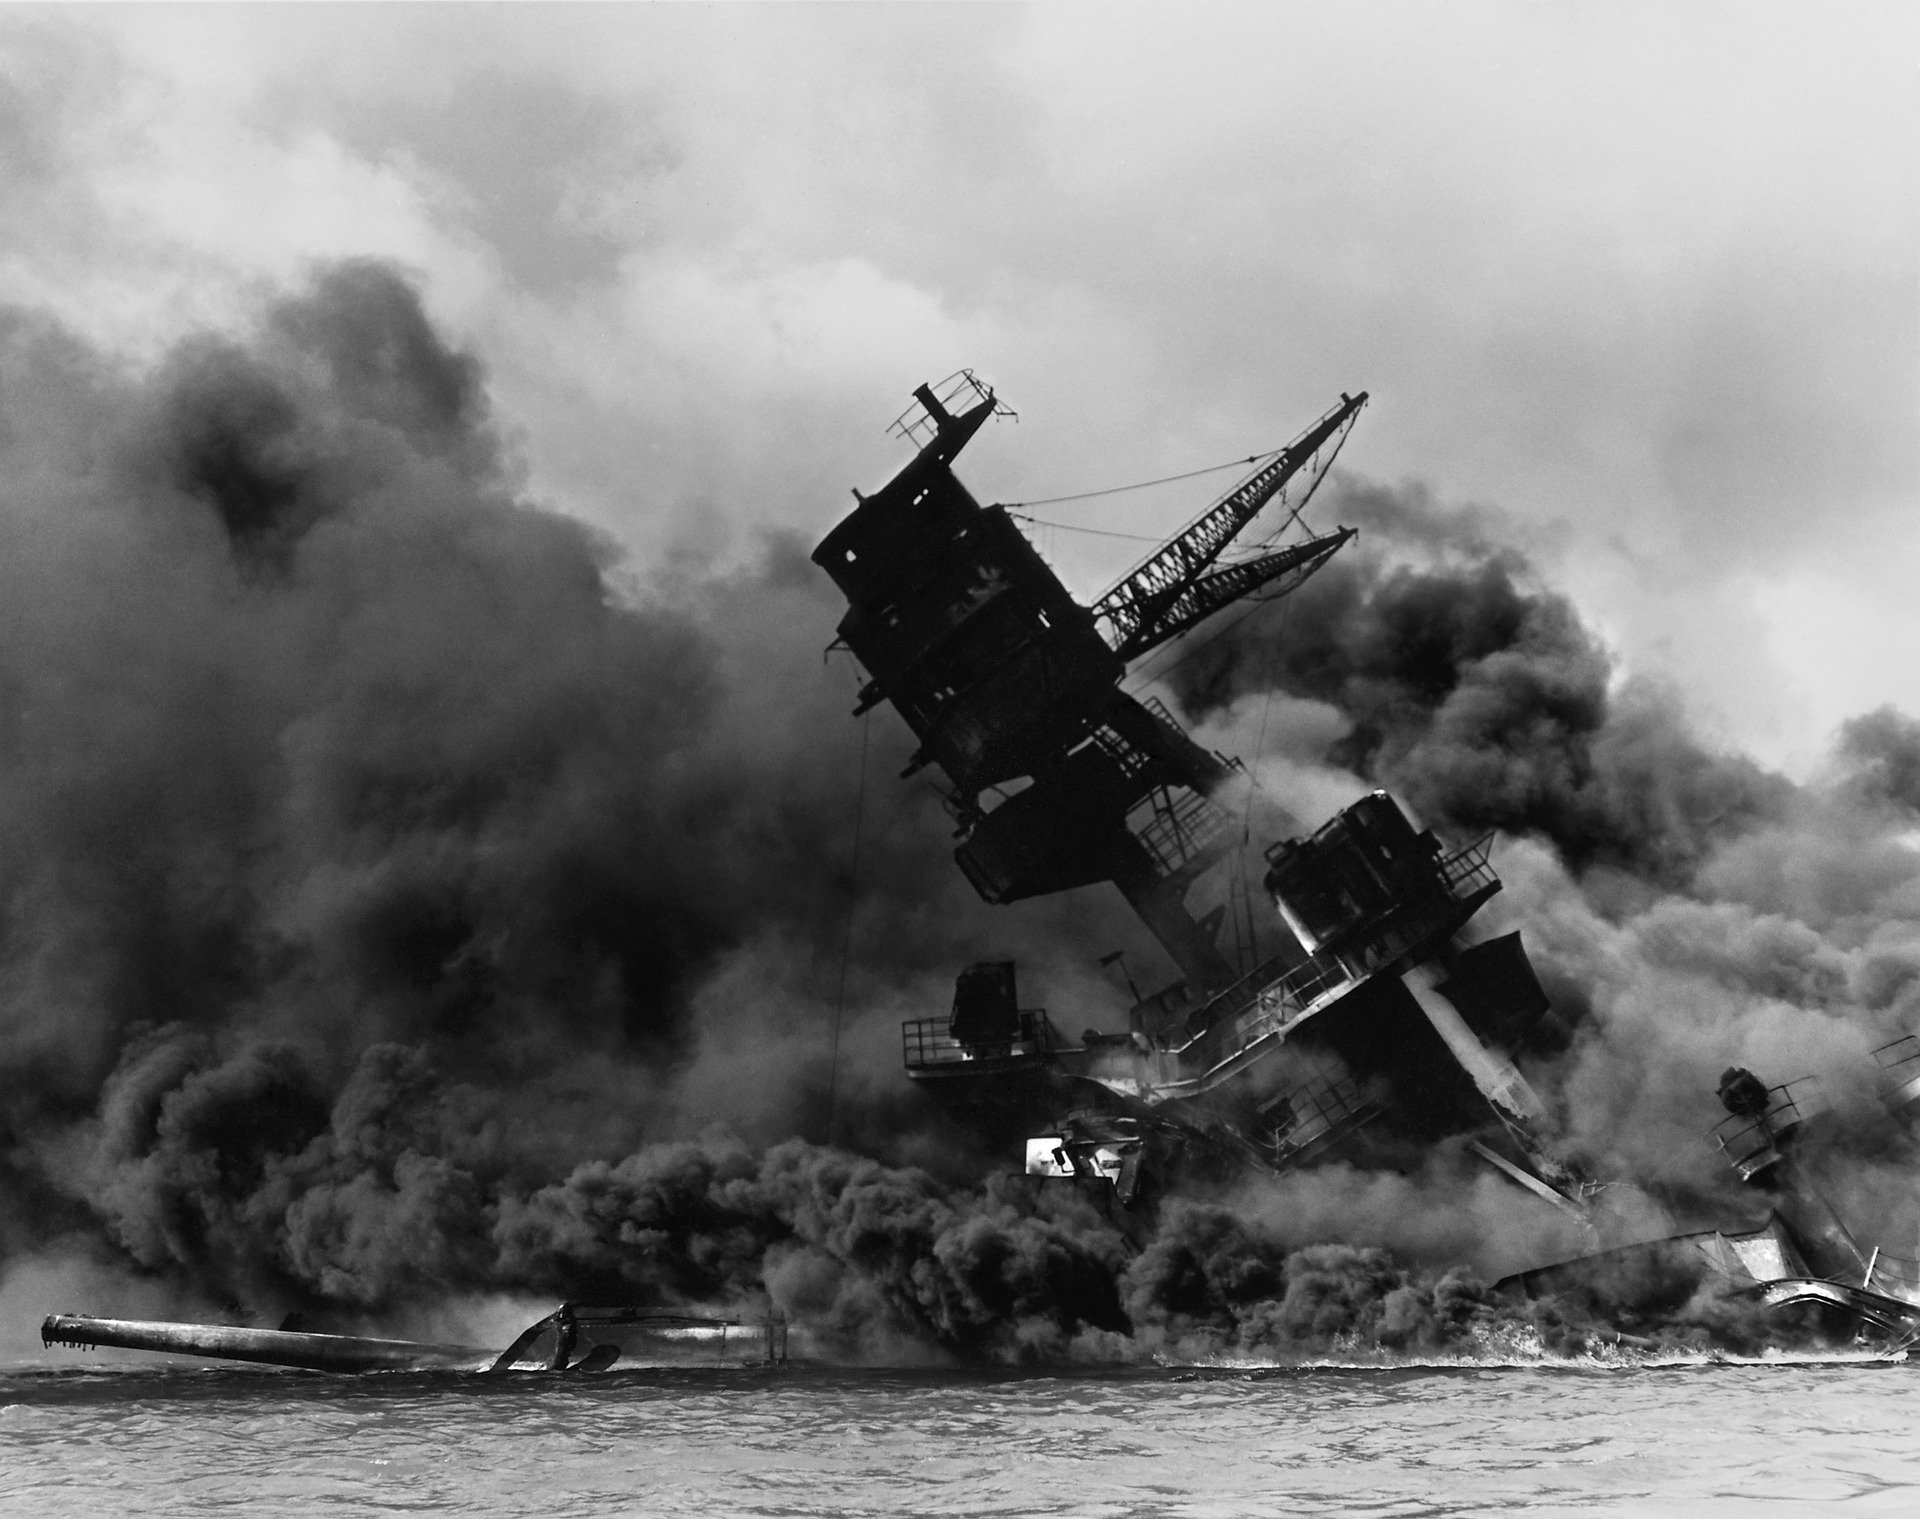 On National Pearl Harbor Remembrance Day, we solemnly remember the tragic events of that morning and honor those who perished in defense of our Nation that day and in the ensuing 4 years of war